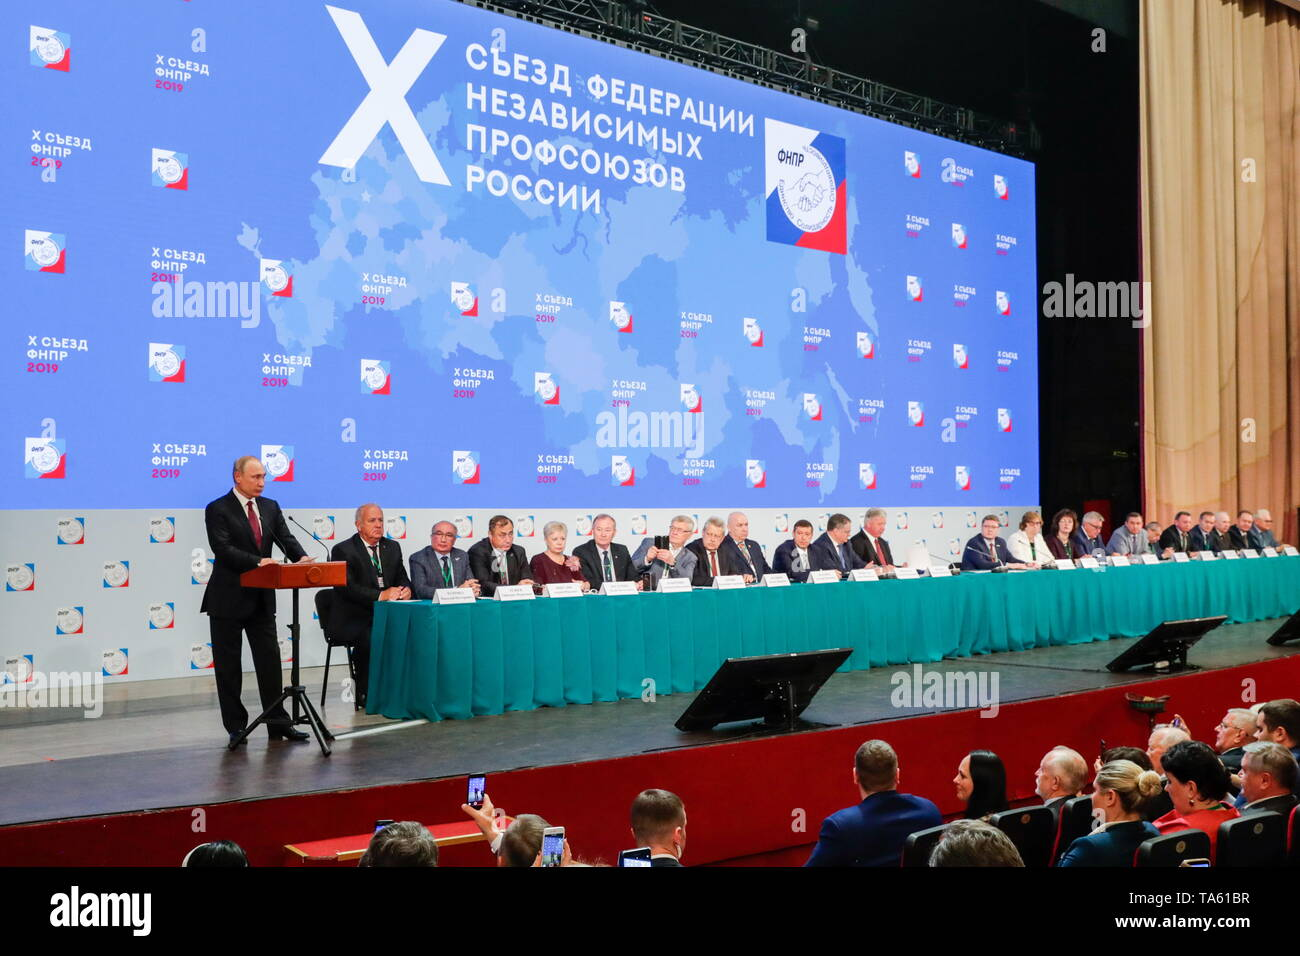 MOSCOW, RUSSIA - MAY 22, 2019: Russia's President Vladimir Putin (L) addresses the 10th Congress of the Russian Federation of Independent Trade Unions at the Izmailovo Concert Hall. Mikhail Metzel/TASS - Stock Image